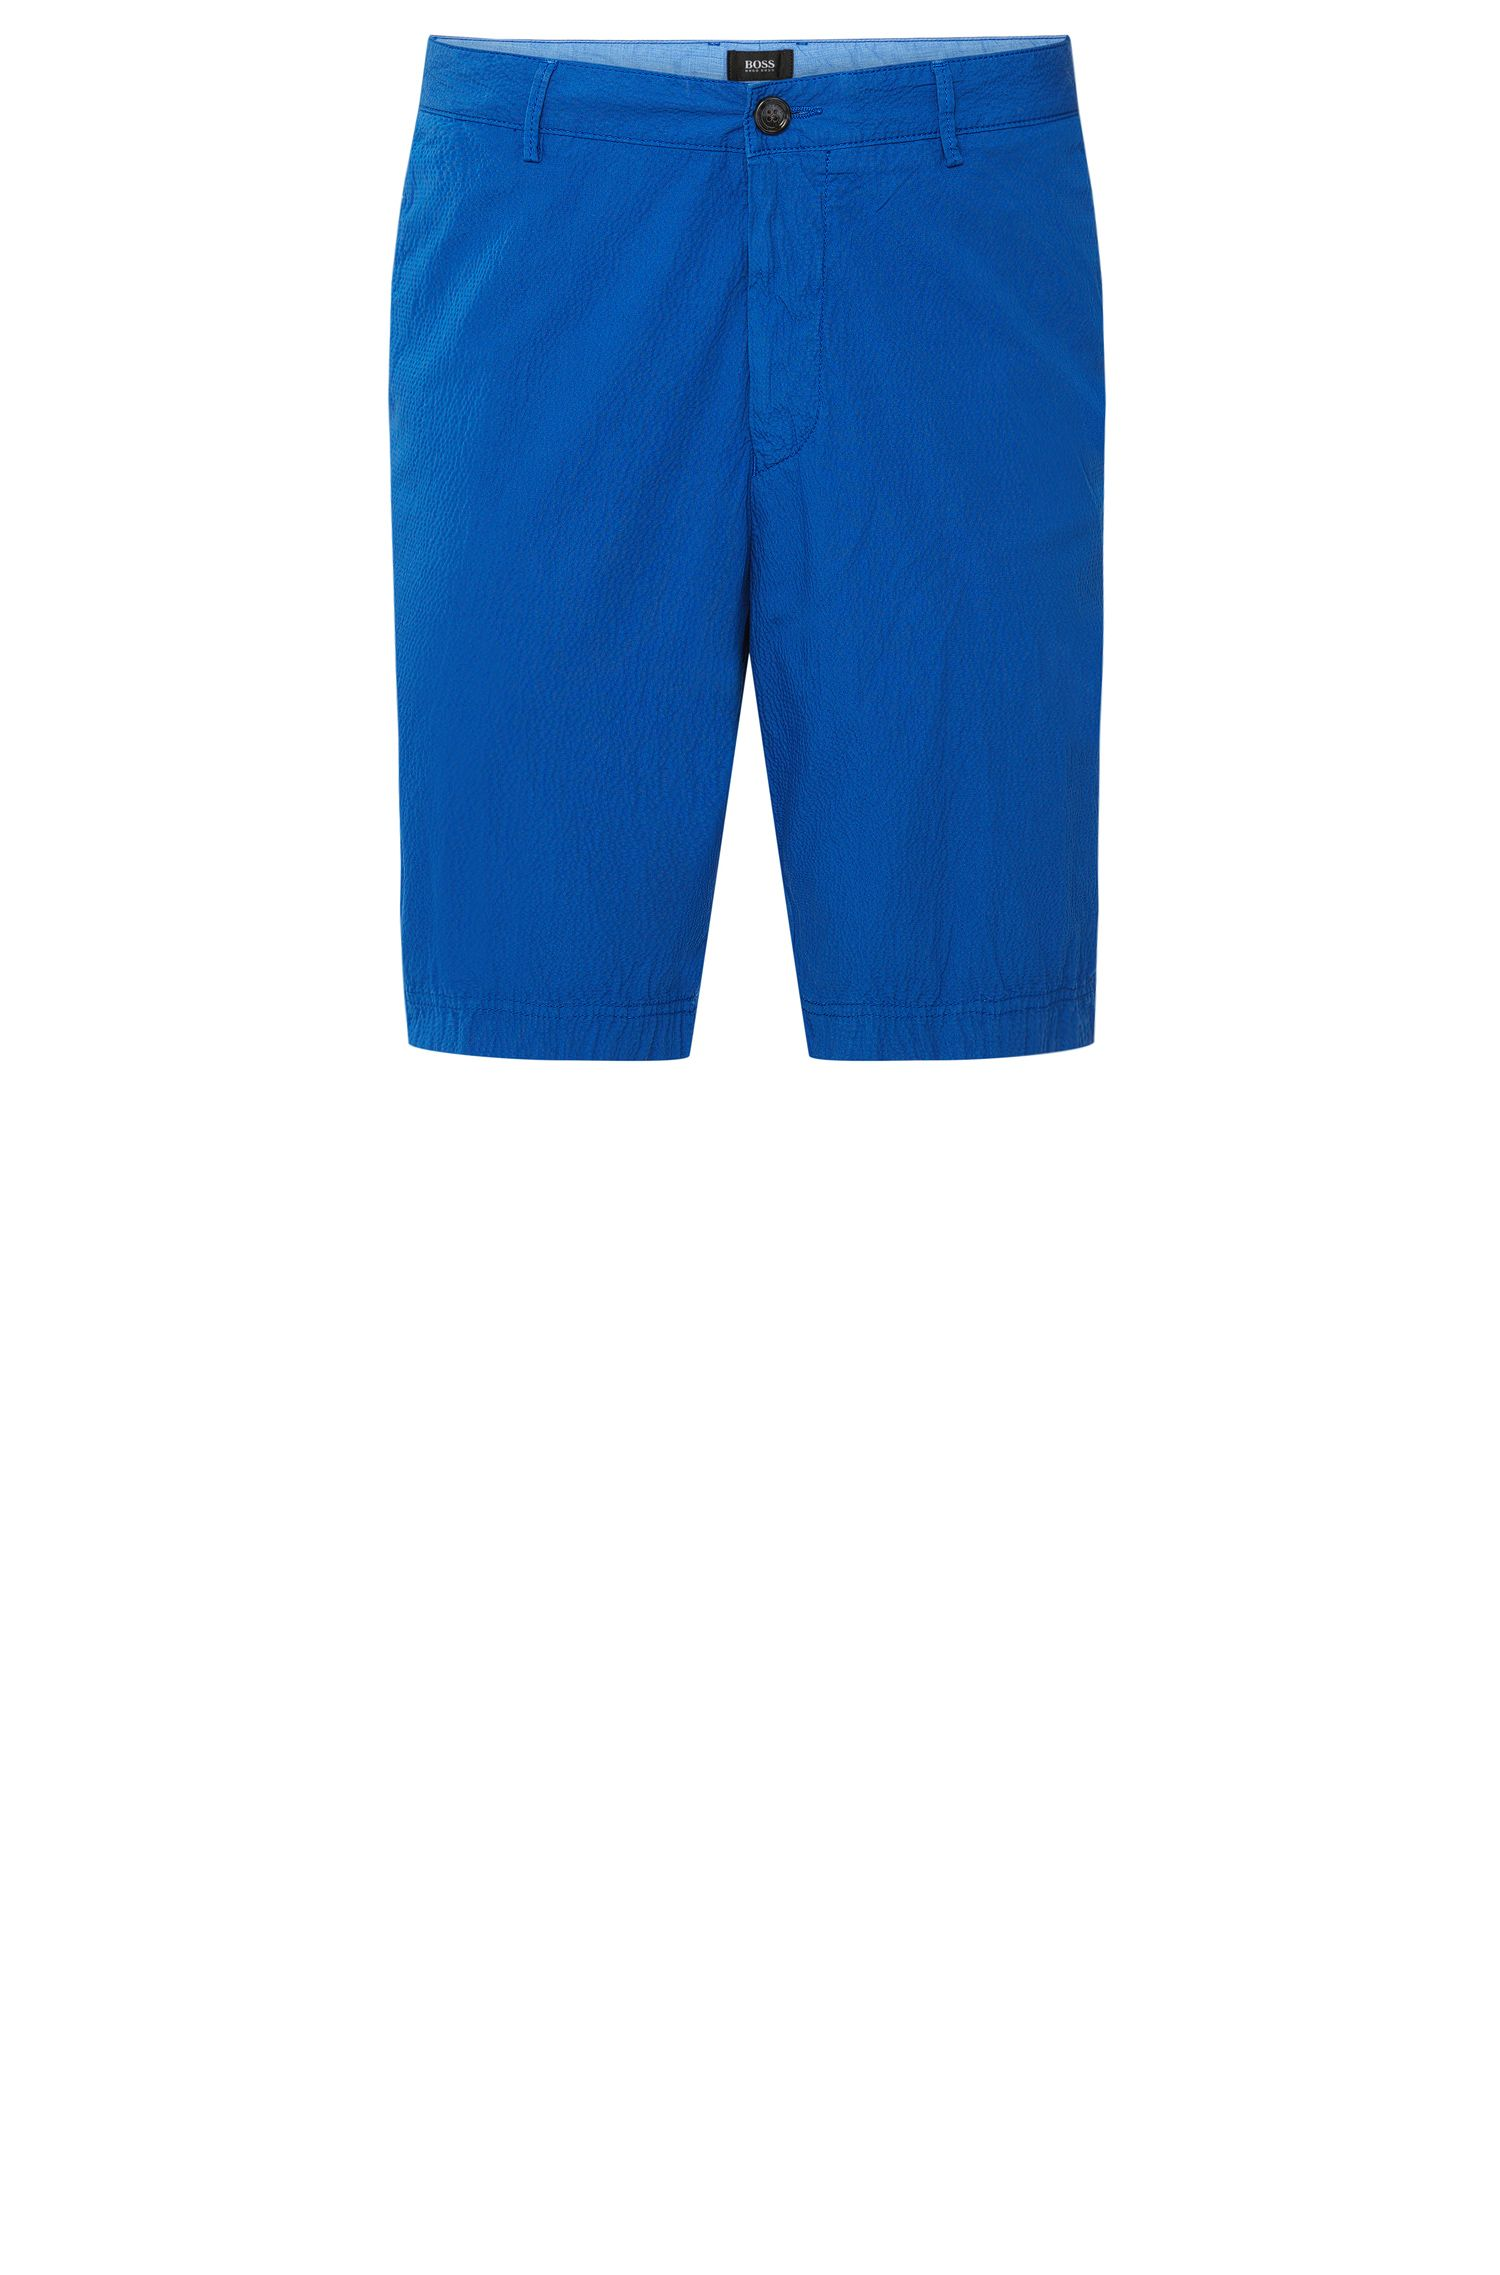 'Crigan-Short-D' | Regular Fit,  Italian Stretch Cotton Seersucker Shorts